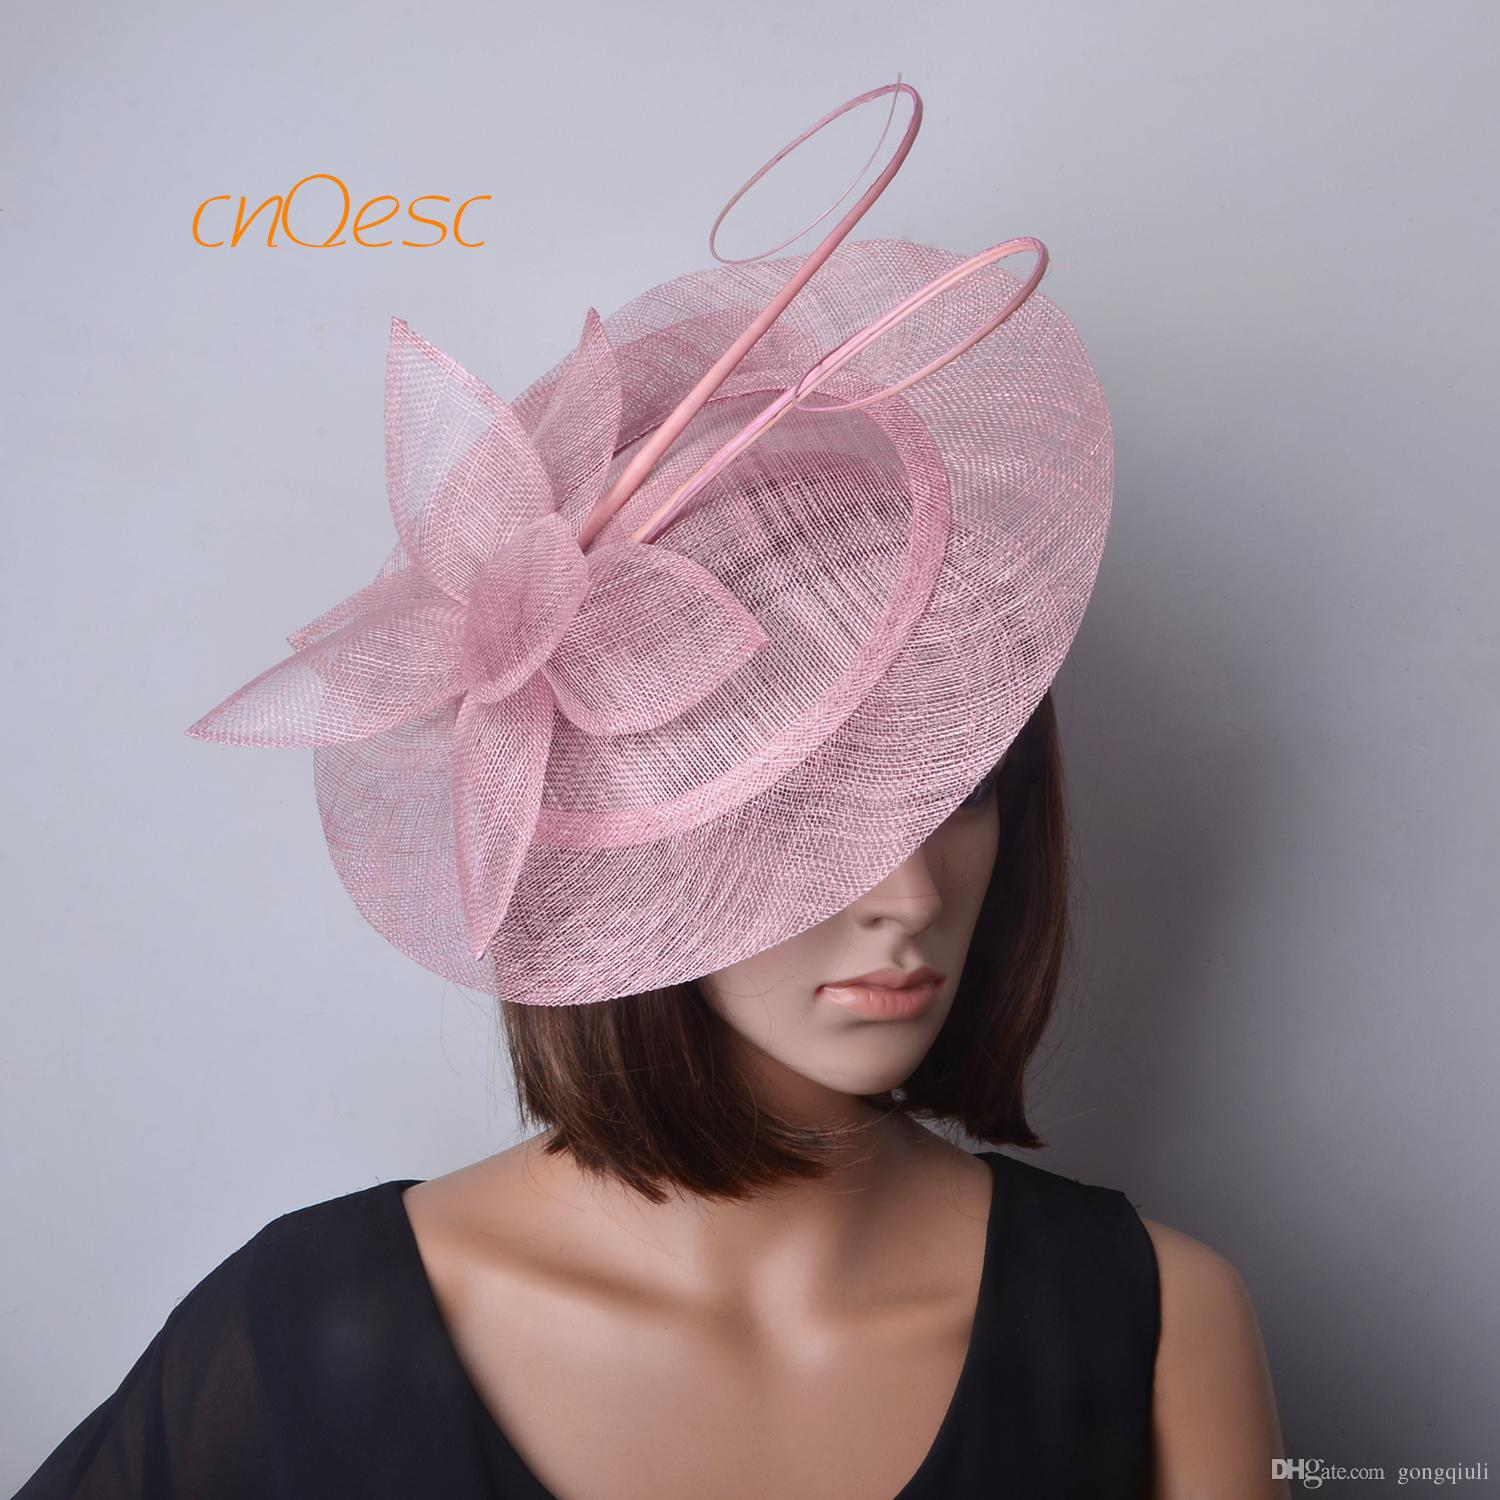 Blush Pink Big Sinamay Fascinator Saucer Fascinator Formal Hat For Wedding  Mother S Day Derby Vintage Feather Hats Vintage Hats Ladies From Gongqiuli 544bda7a528